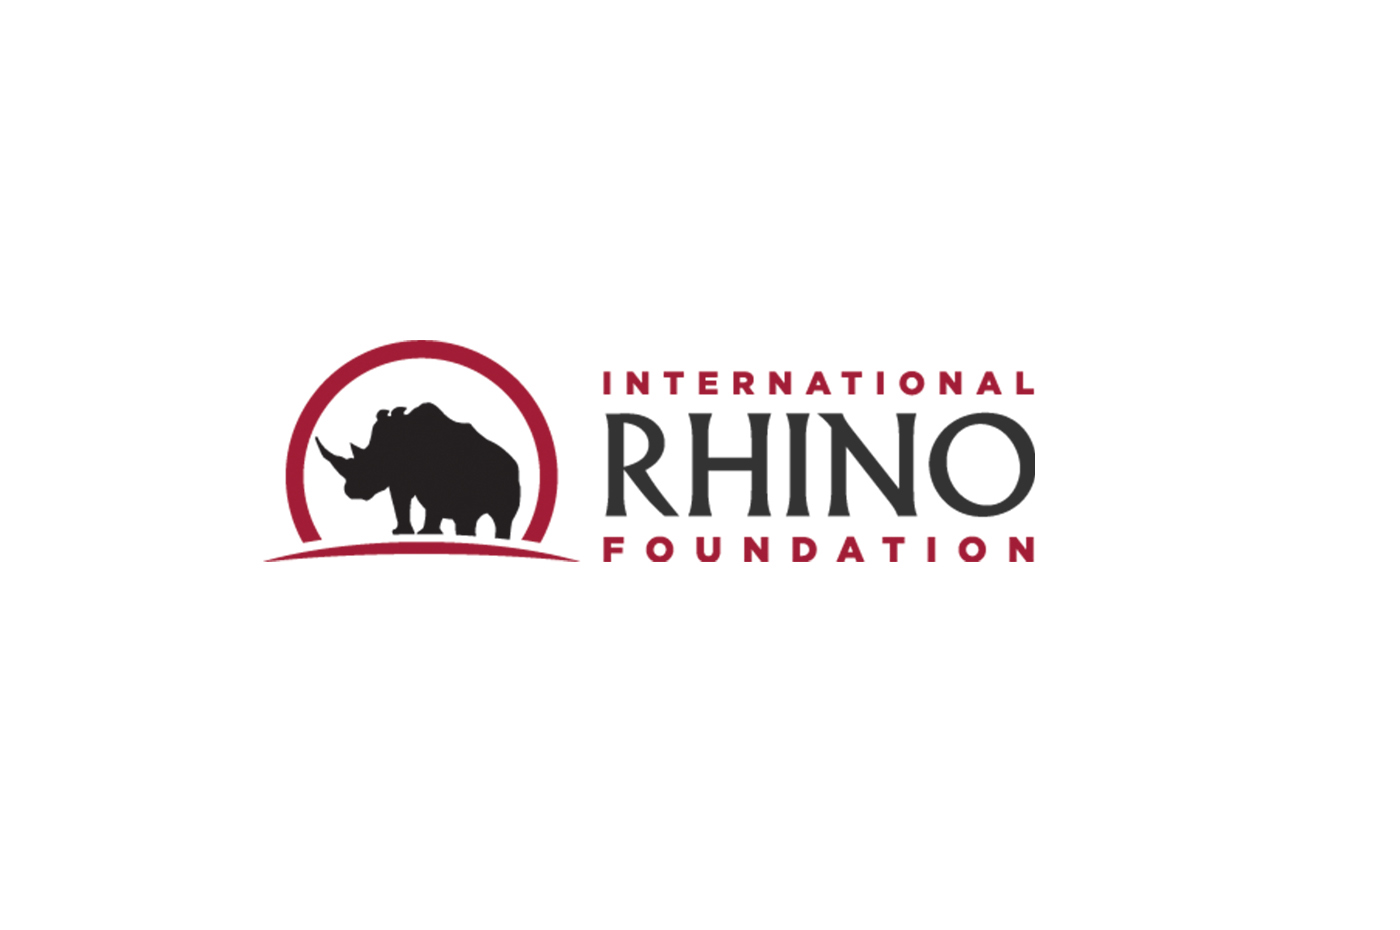 Rhino_Foundation.jpg